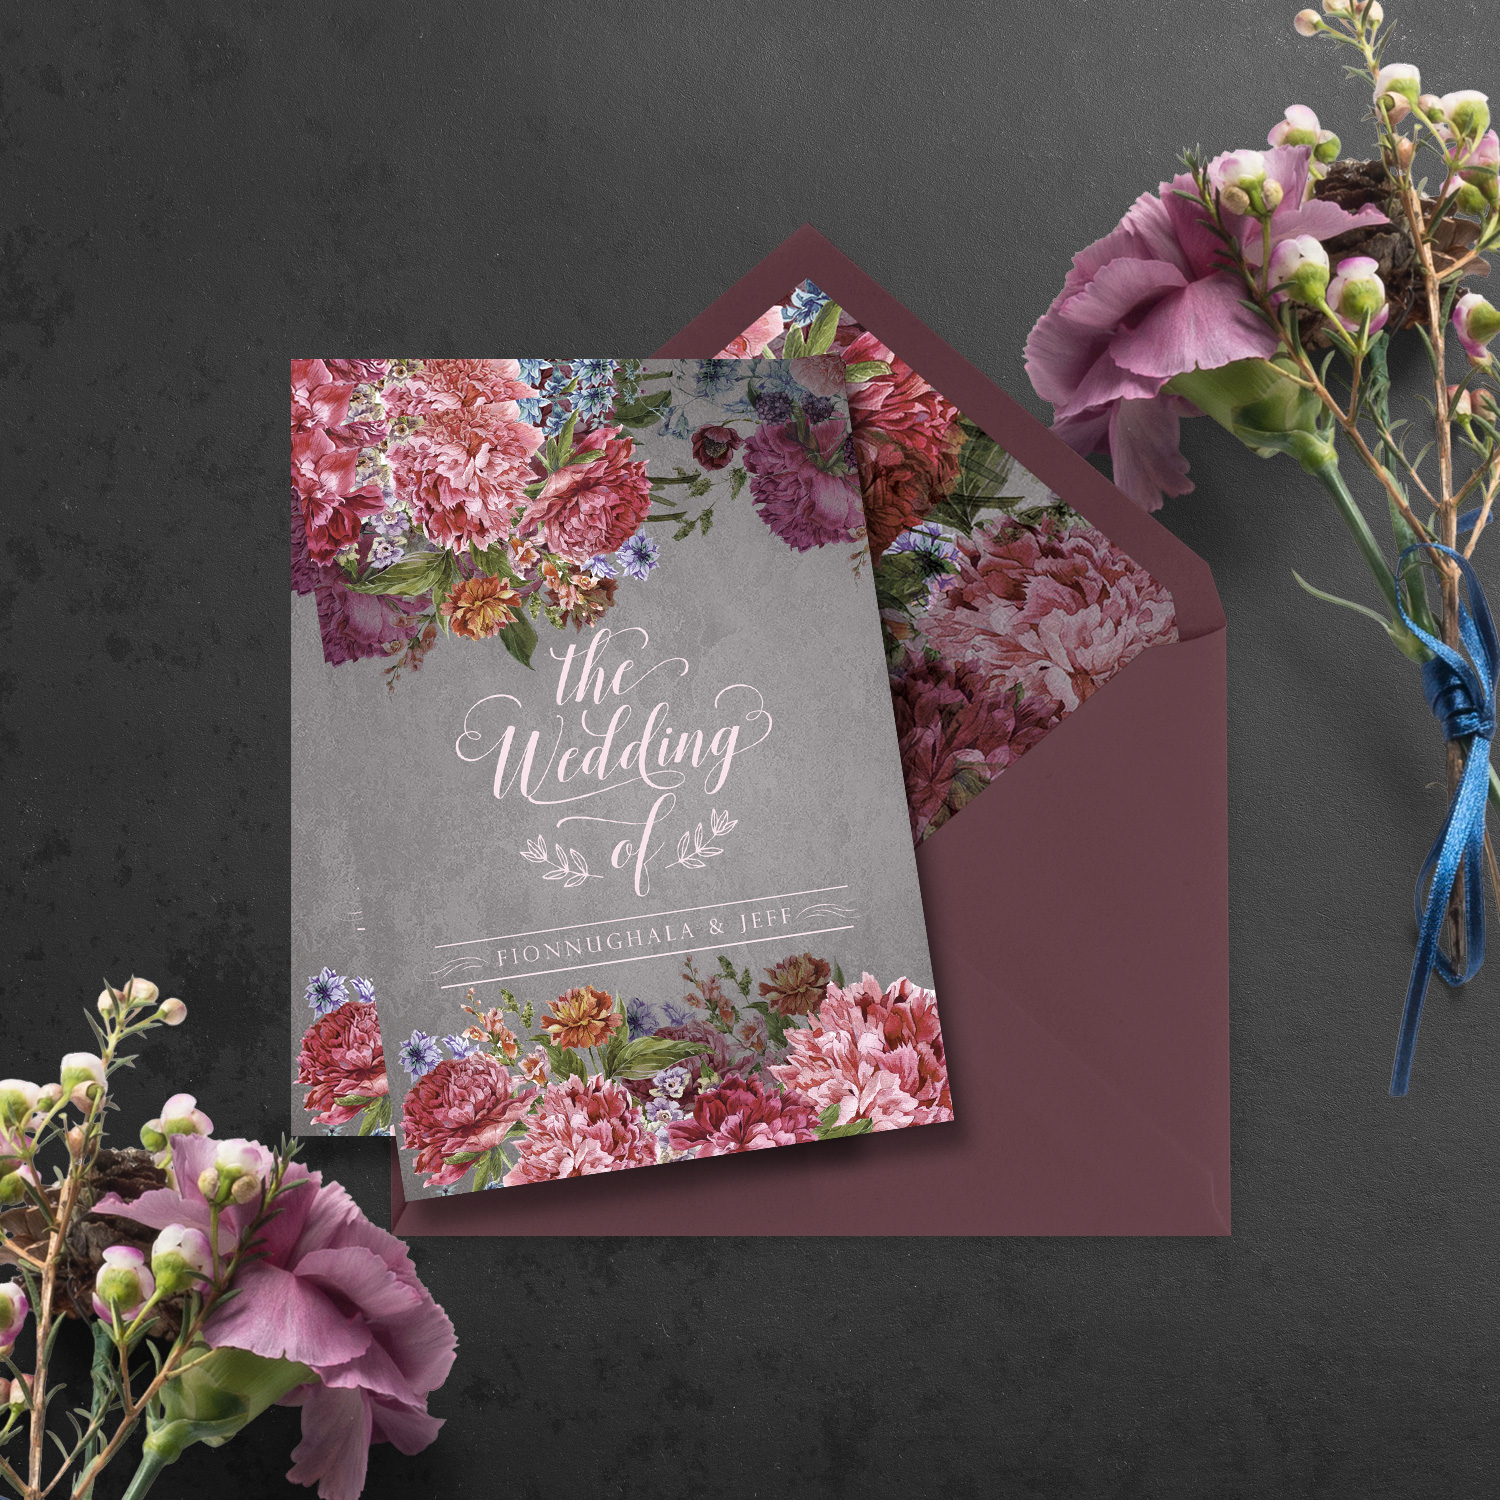 burgundy floral wedding invite wedding invitations mass booklets killarney